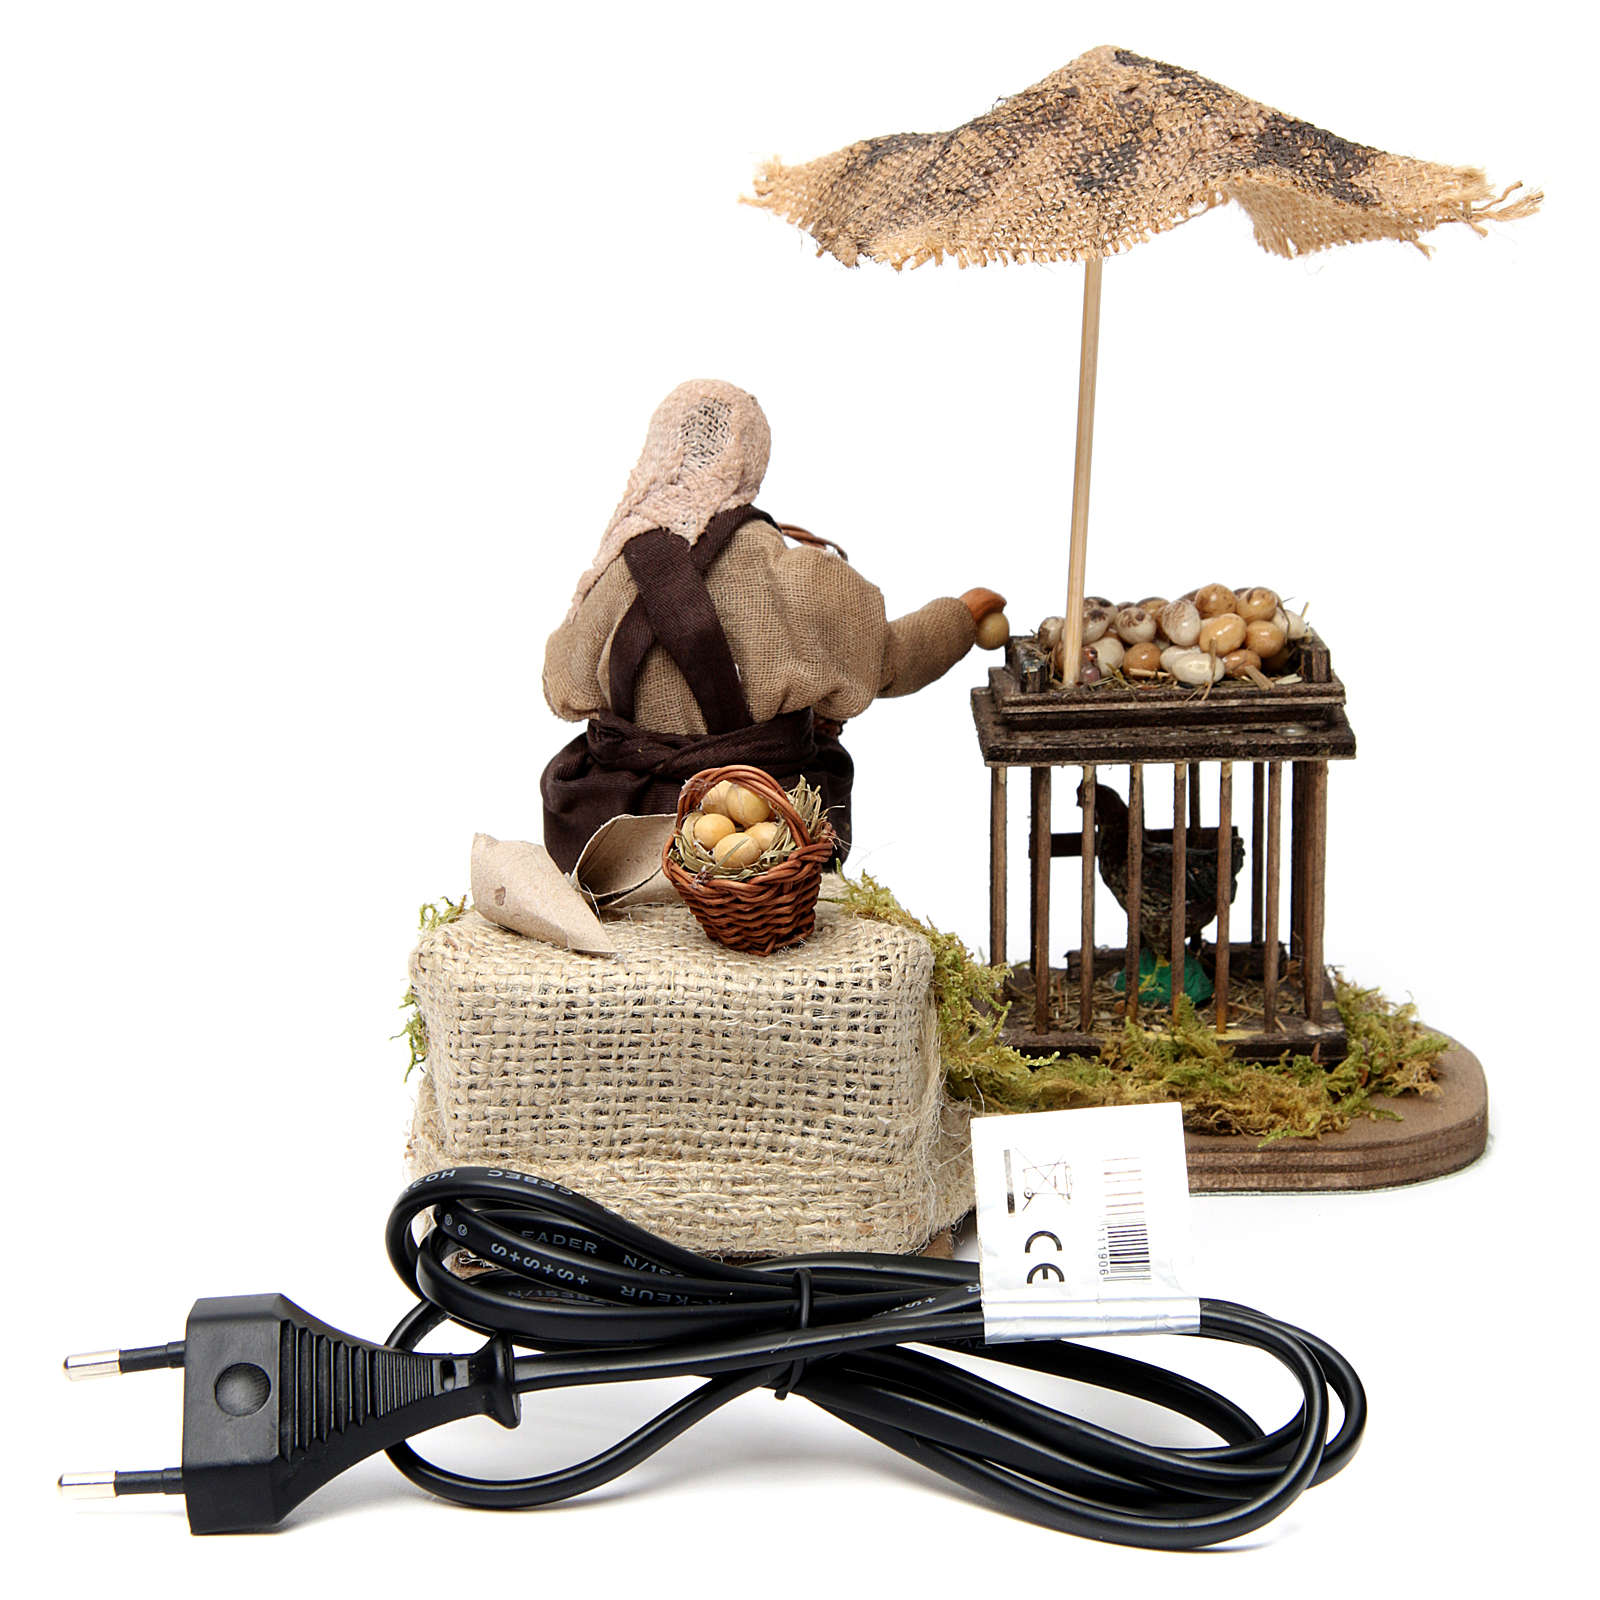 Moving man with basket of eggs and hen Neapolitan Nativity Scene 12 cm 4